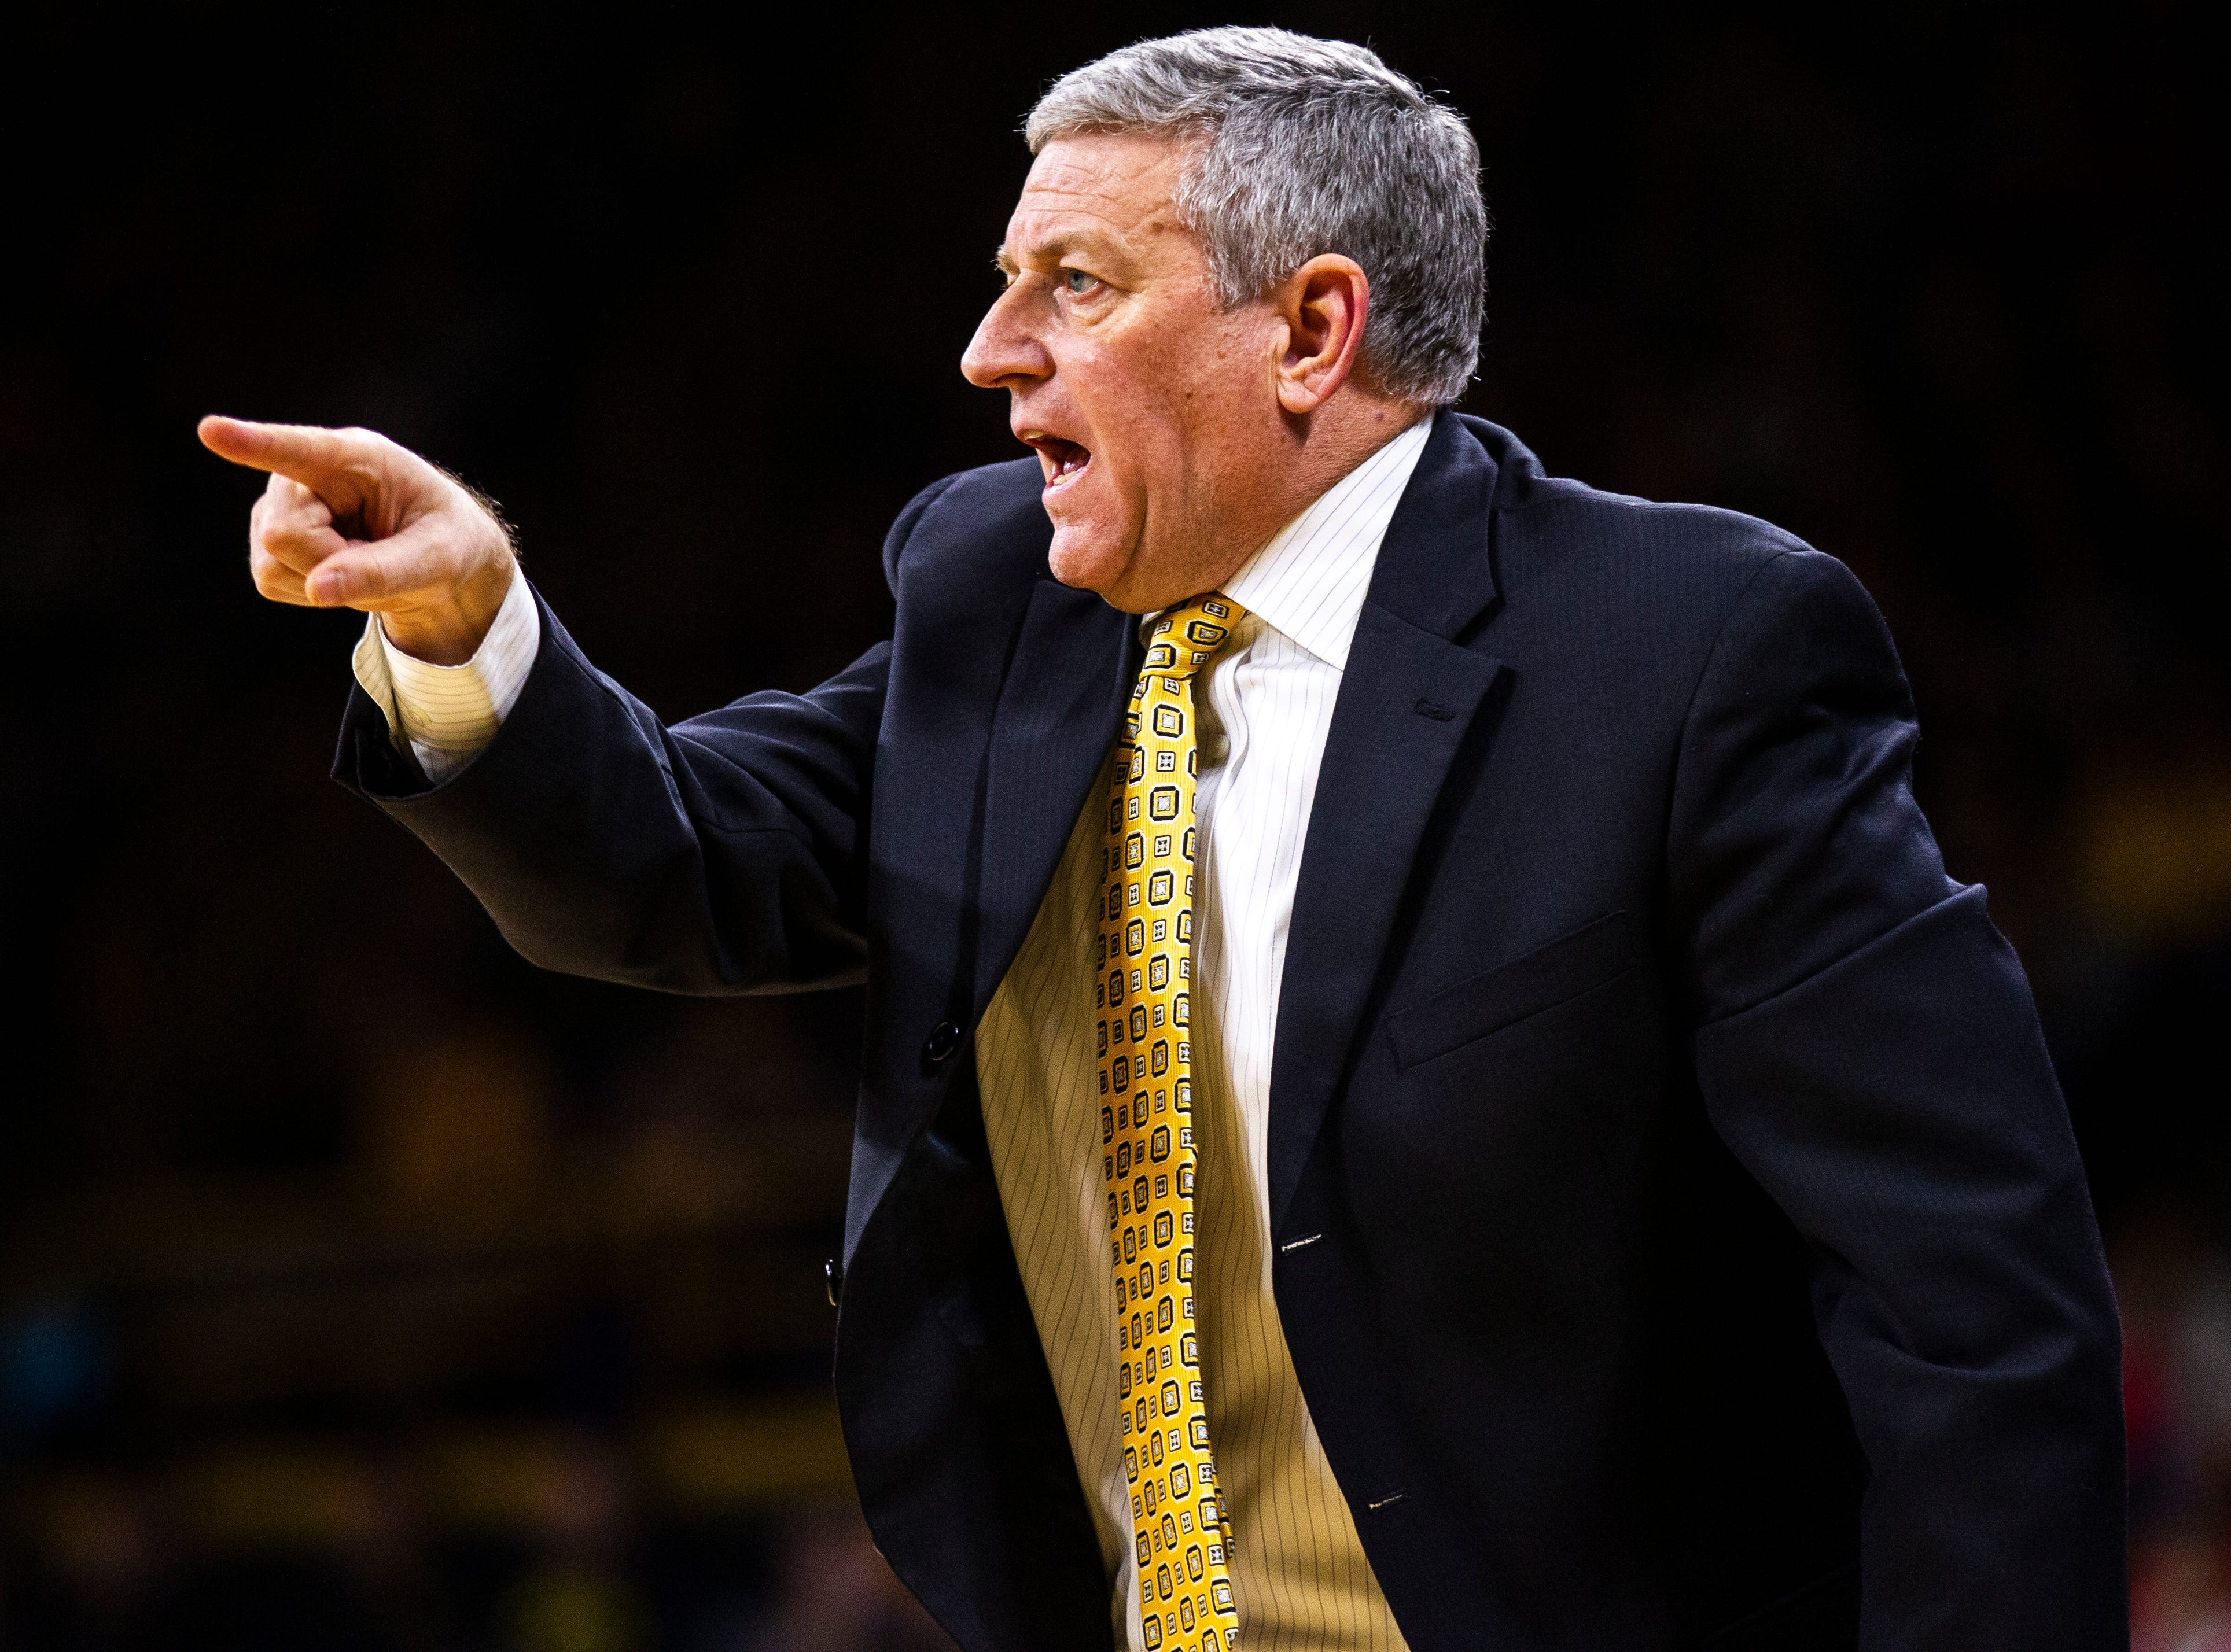 Iowa assistant Kirk Speraw calls out to players during a NCAA Big Ten Conference men's basketball game on Sunday, Jan. 6, 2019, at the Carver-Hawkeye Arena in Iowa City, Iowa.